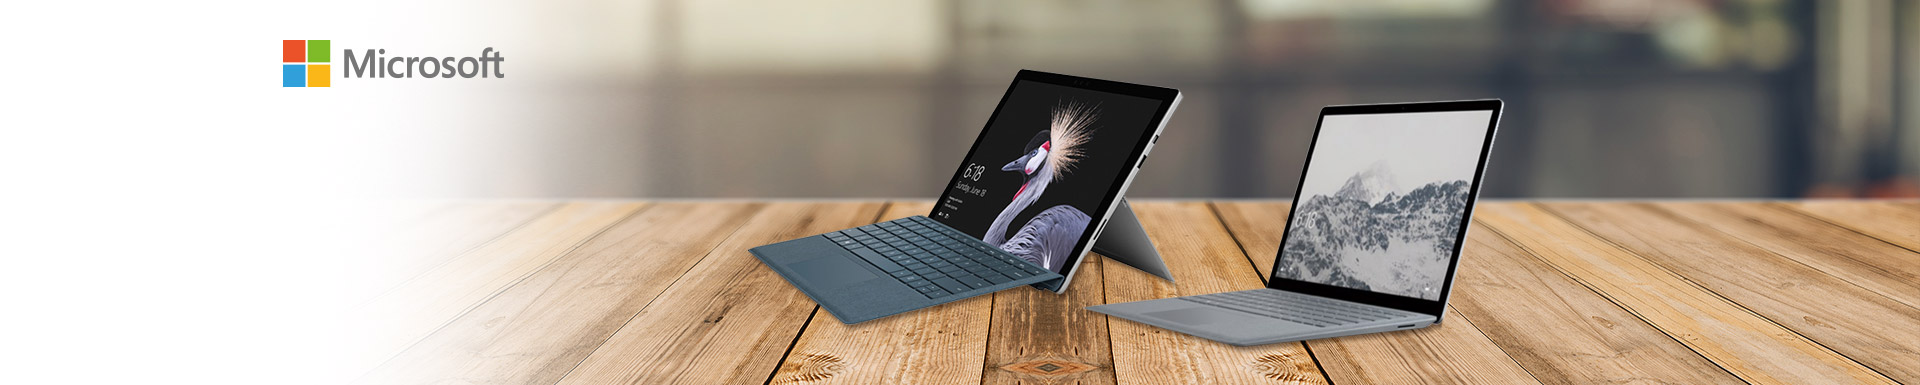 Flinke korting op de Microsoft Surface Laptop en Surface Pro